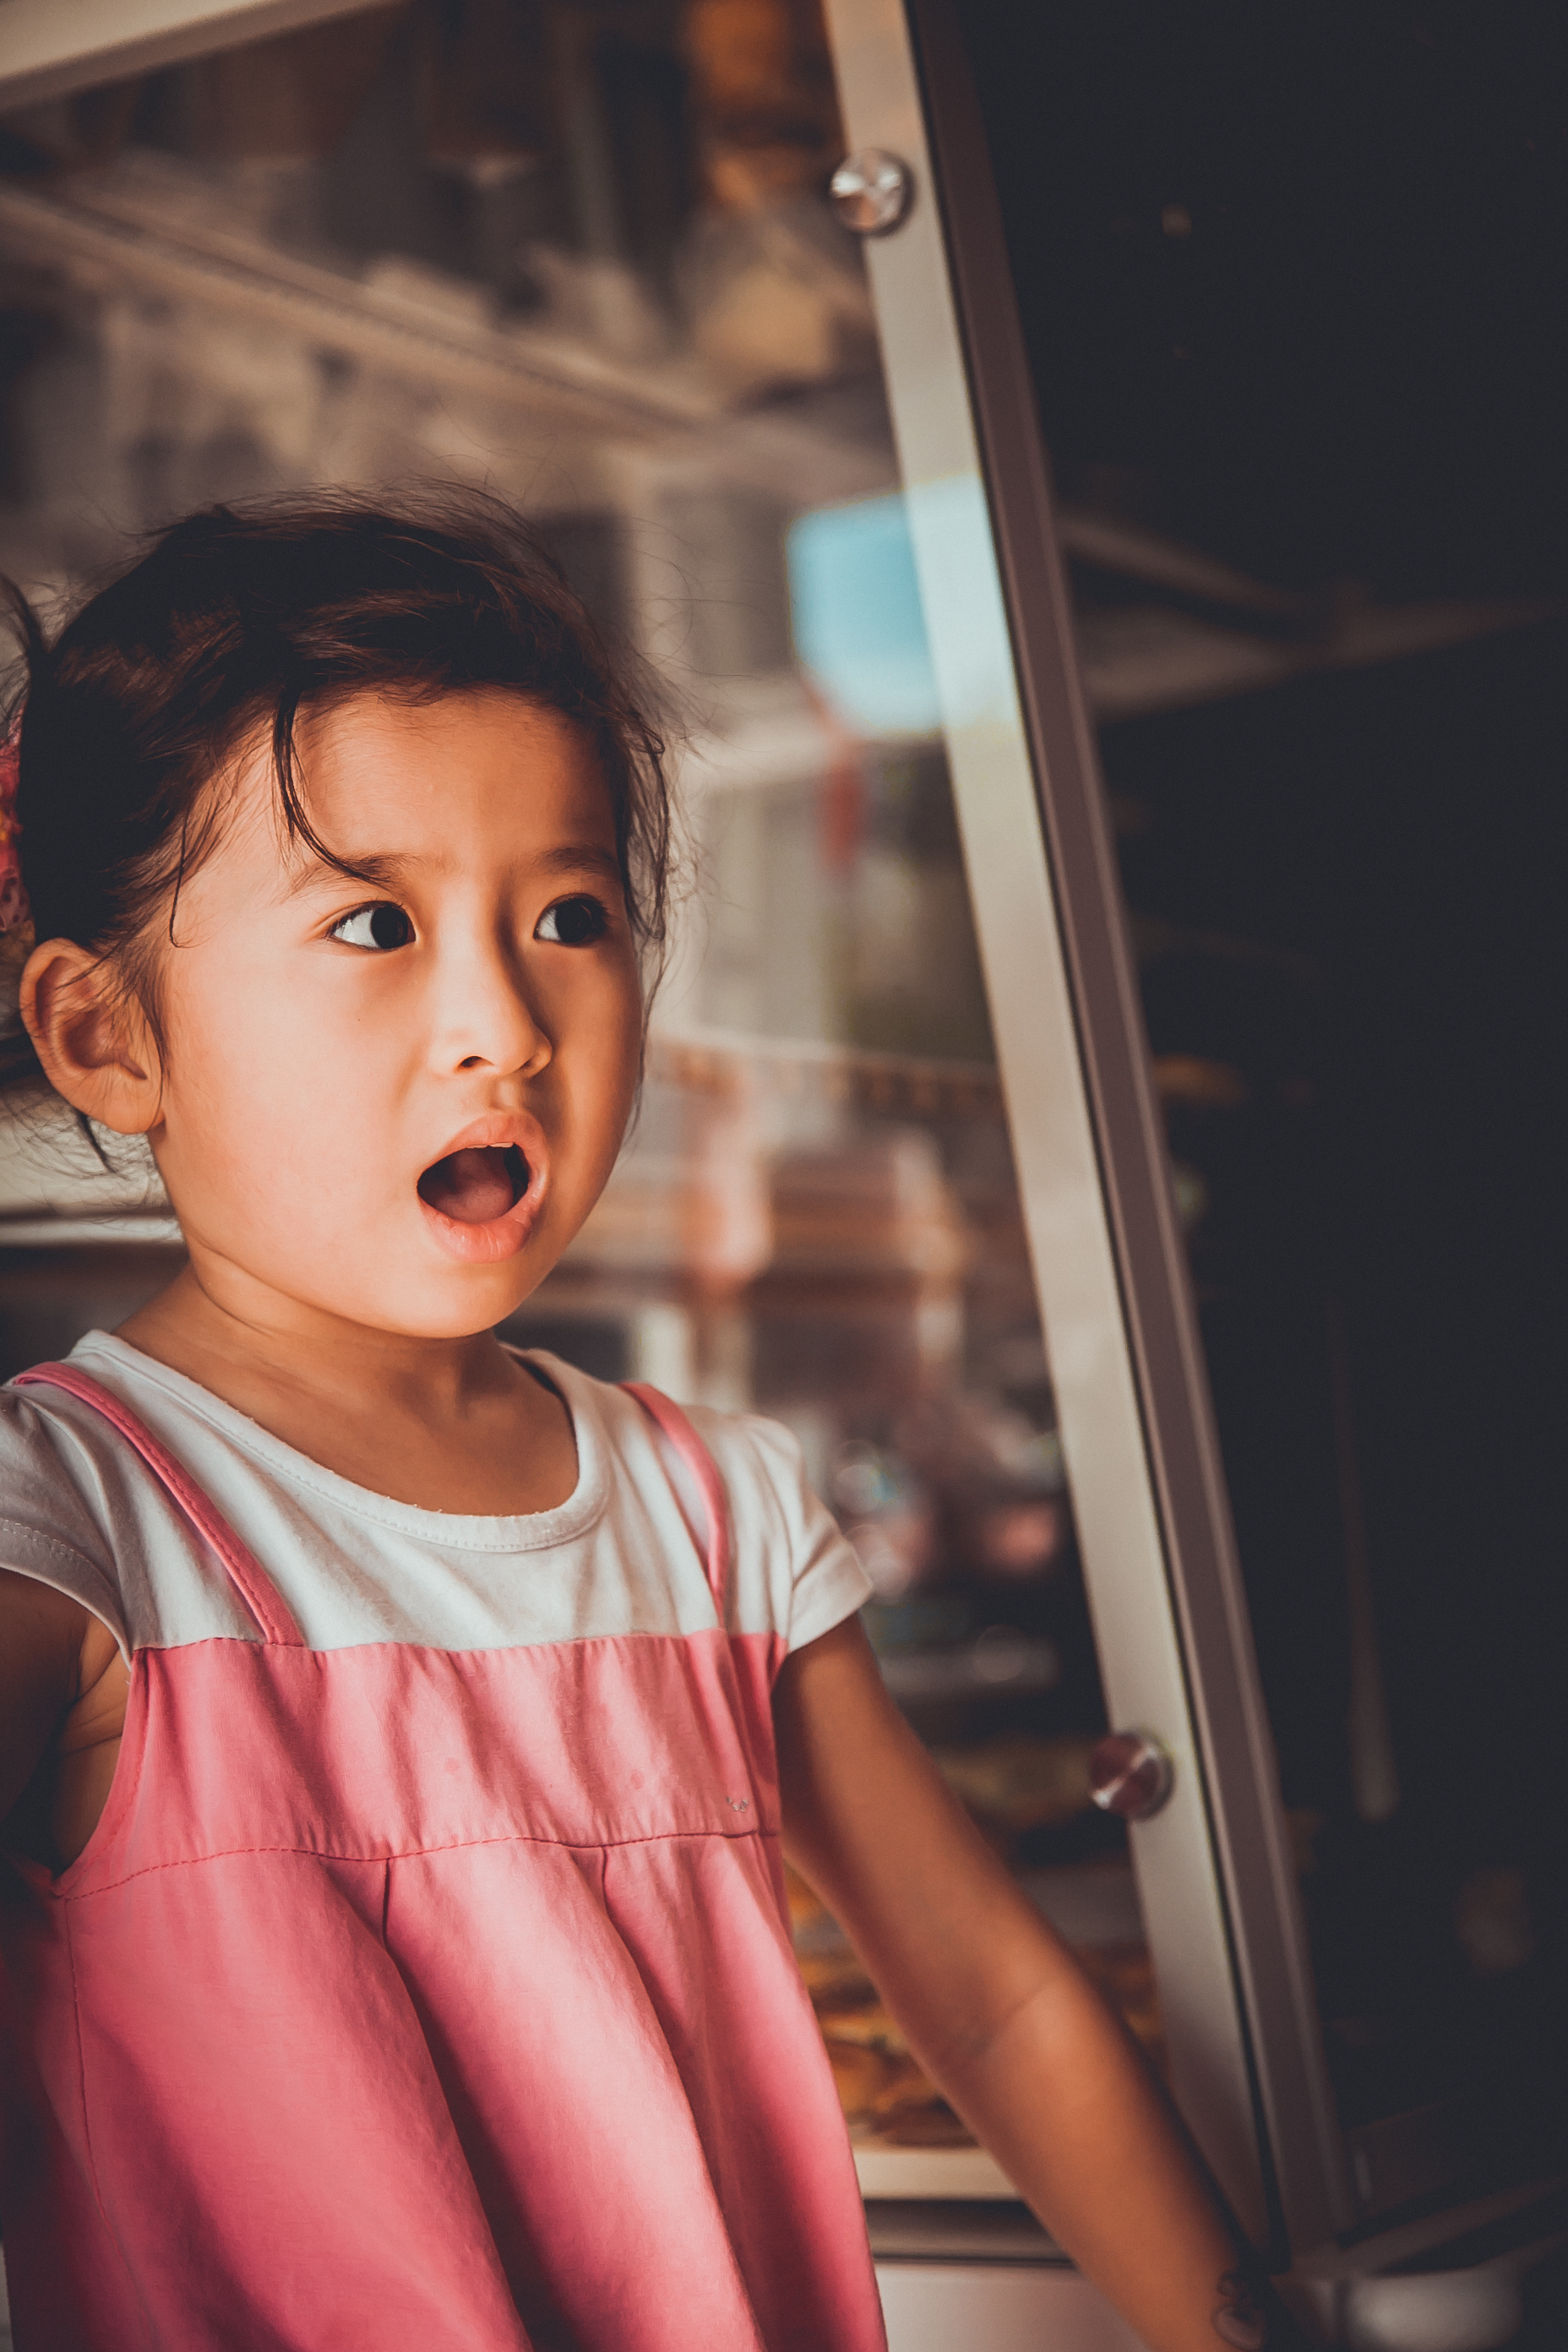 Close-up on a surprised-looking child